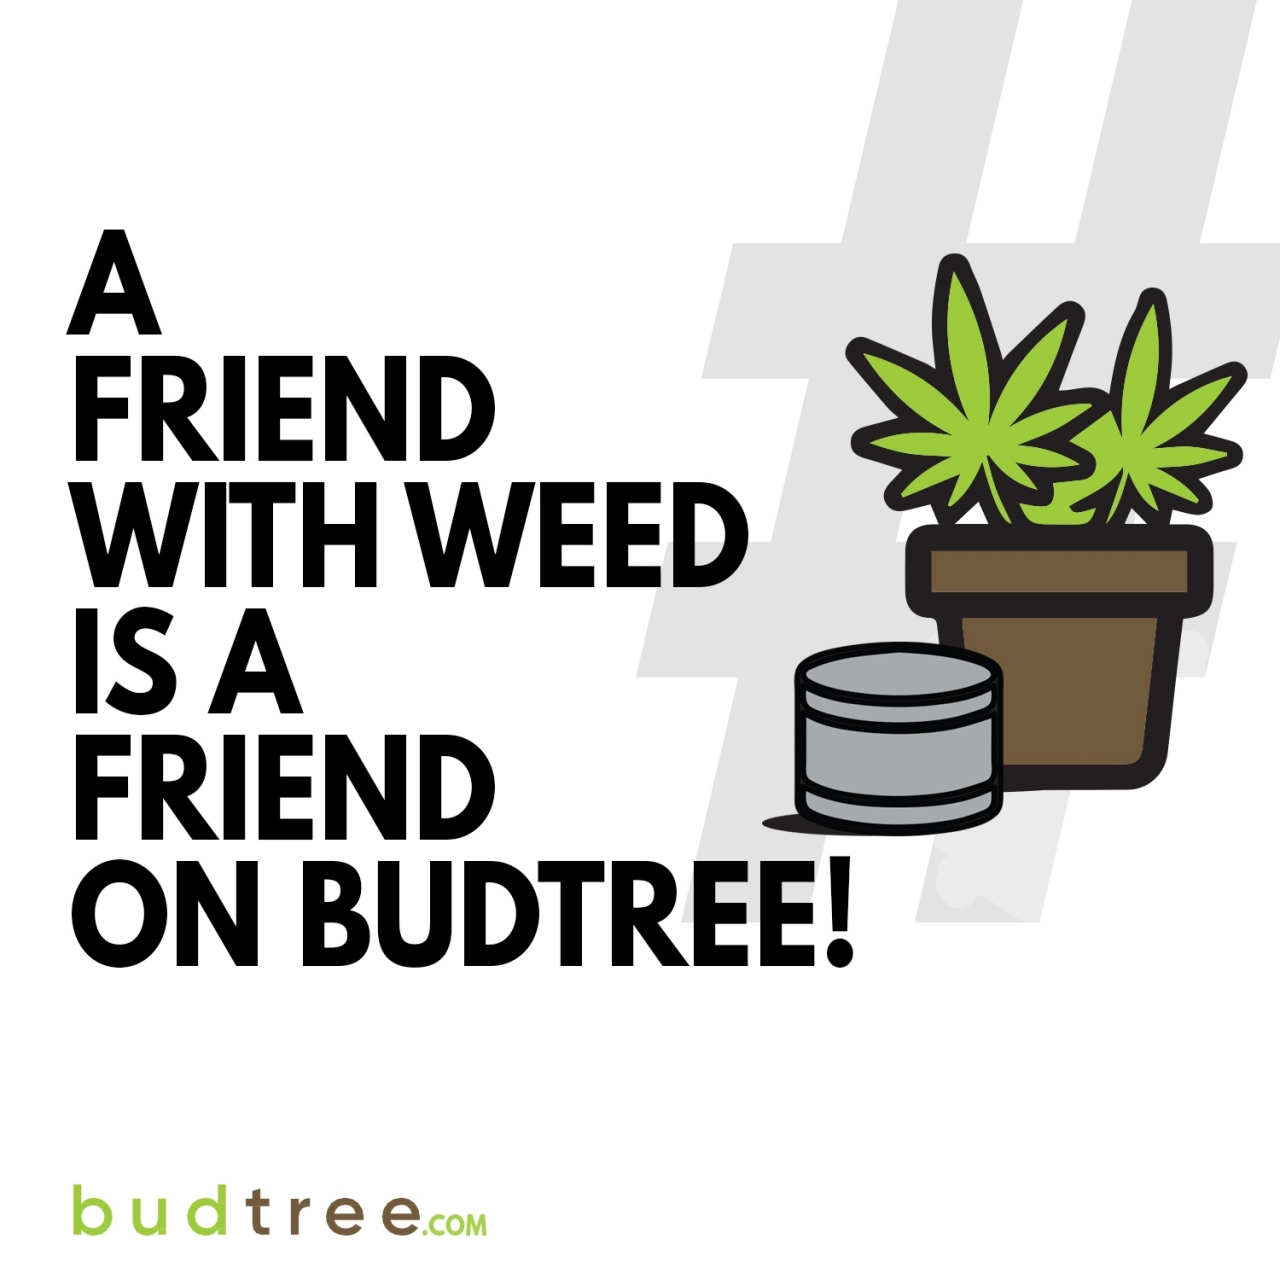 A_budtree_friend